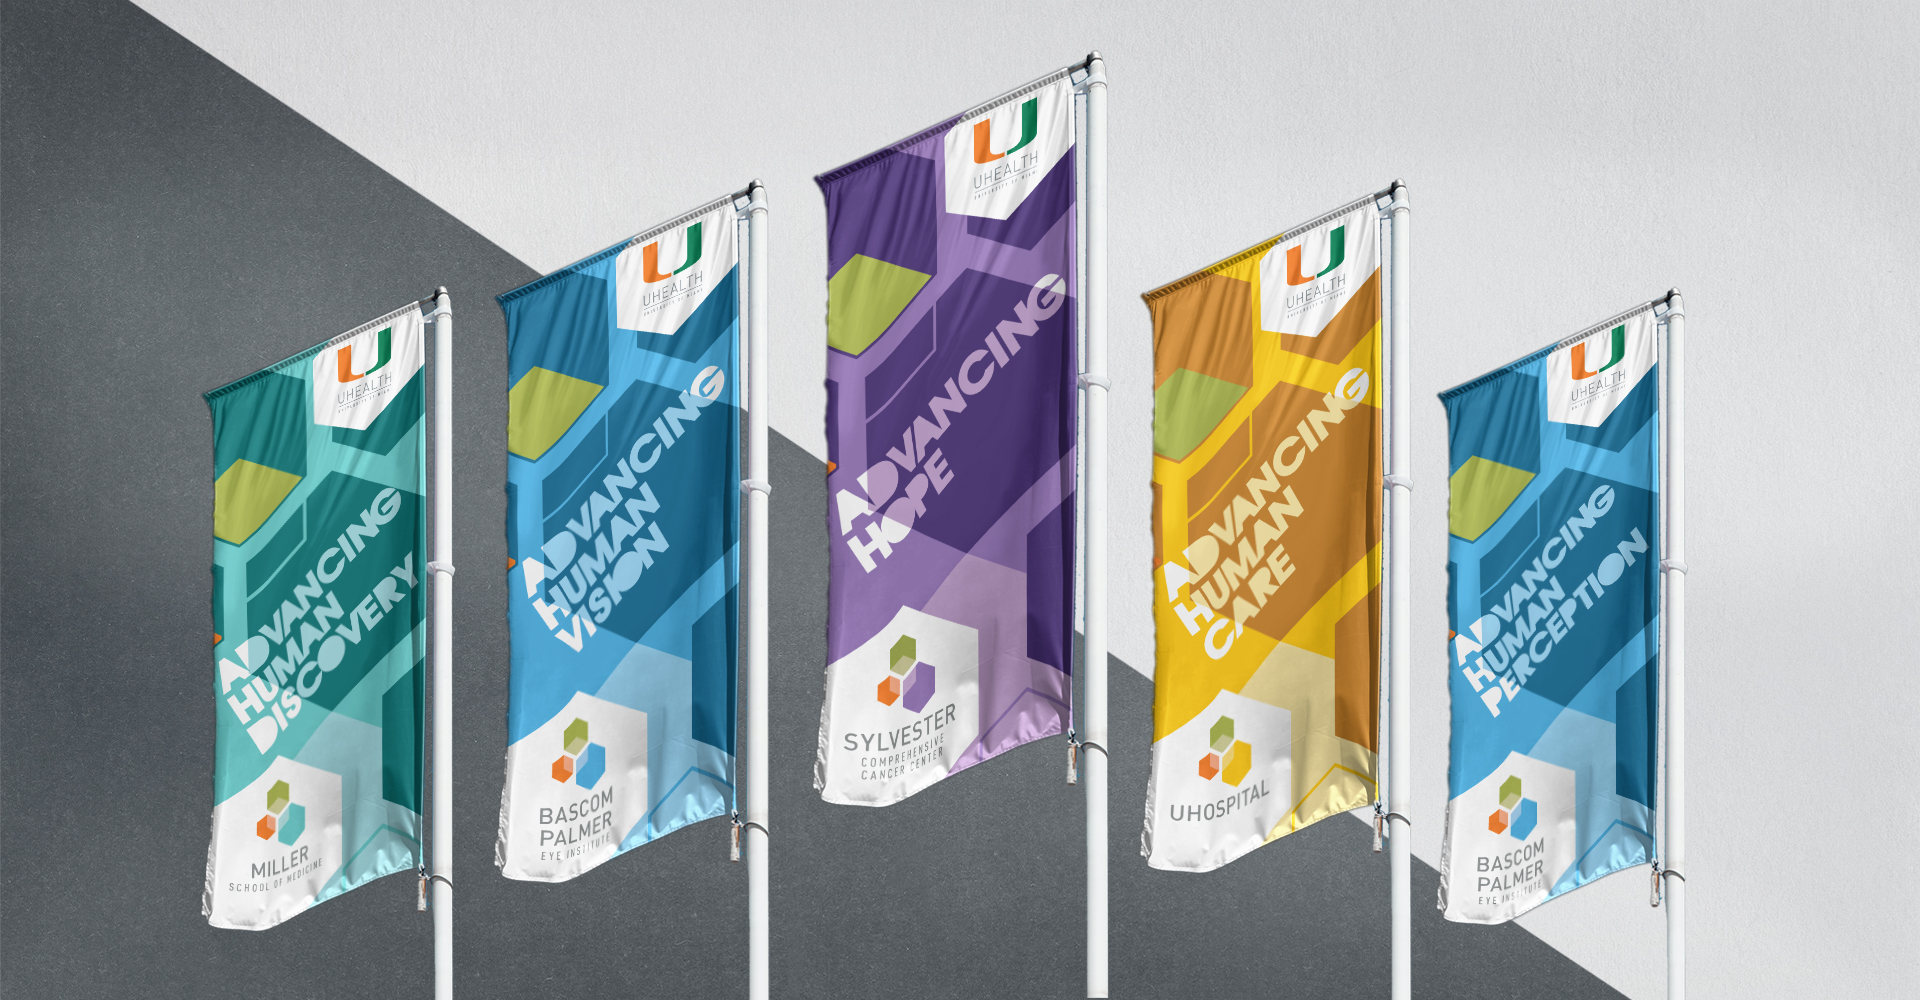 UHealth flags